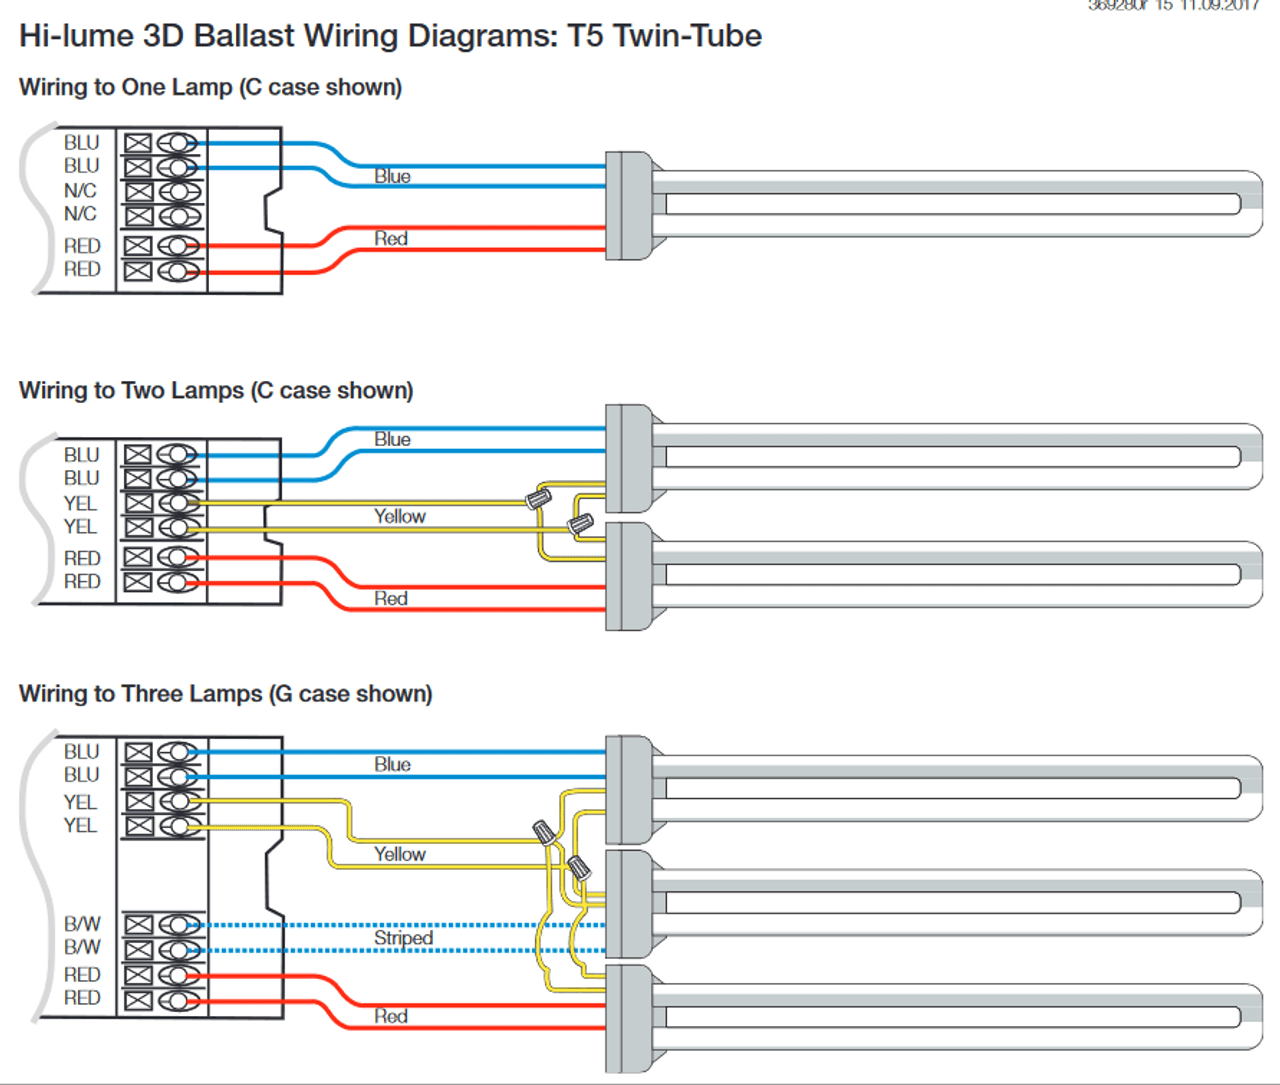 small resolution of  lutron hi lume 3d dimming ballast twin tube wiring